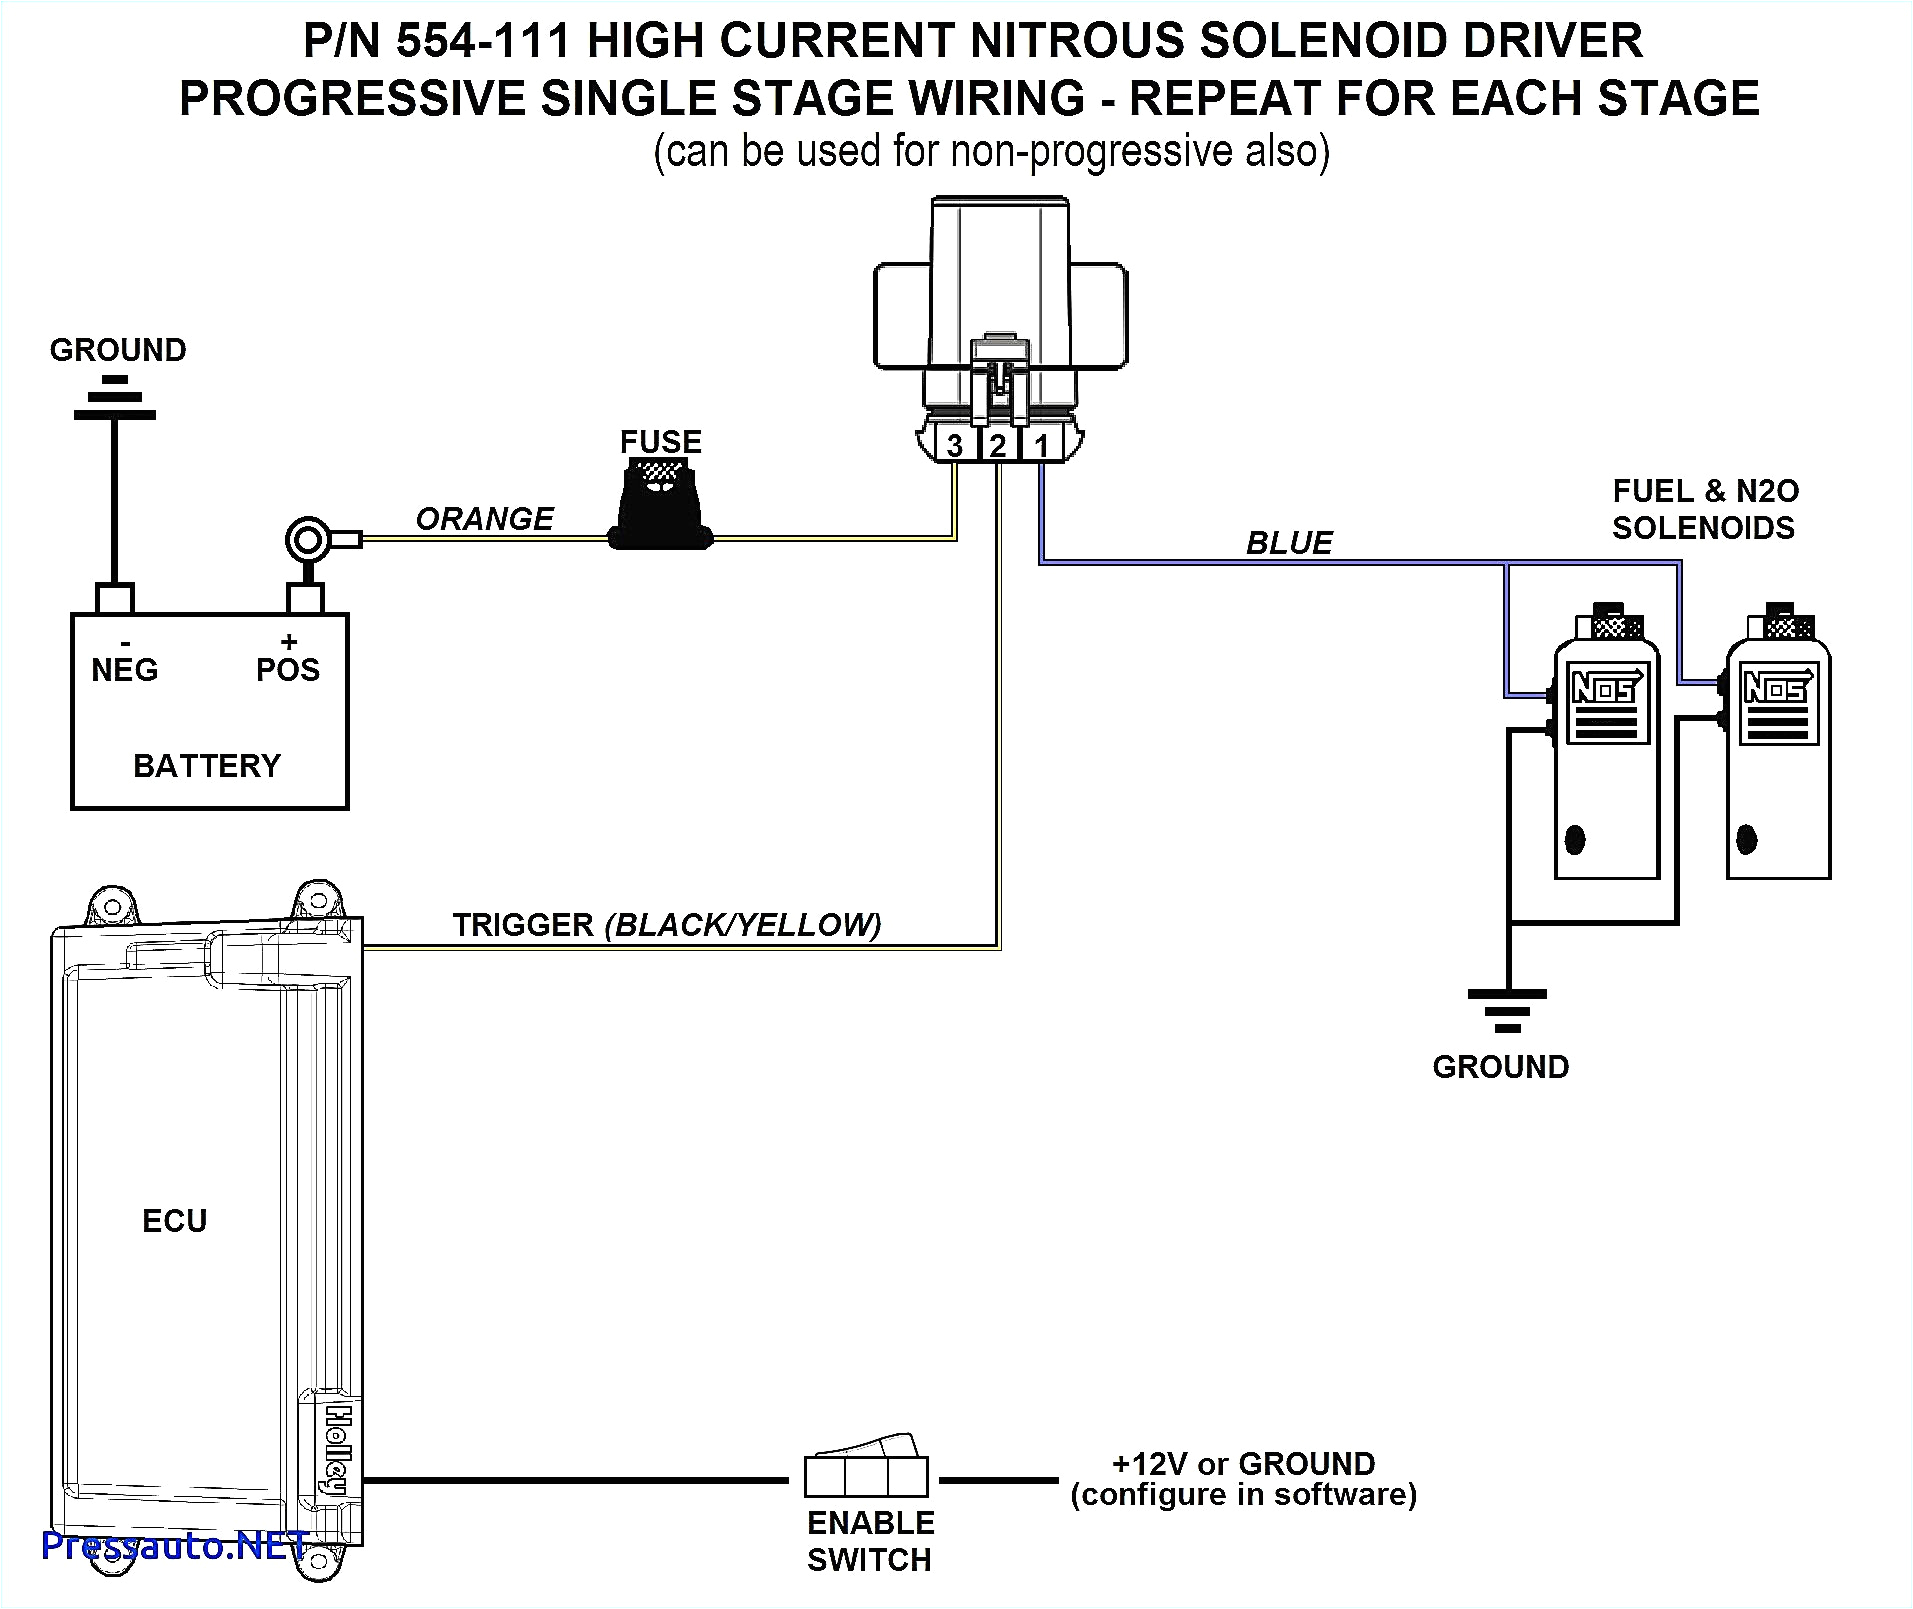 electric fuel pump wiring diagram dolgular outstanding relay of 2003 cadillac cts fuel pump relay location jpg